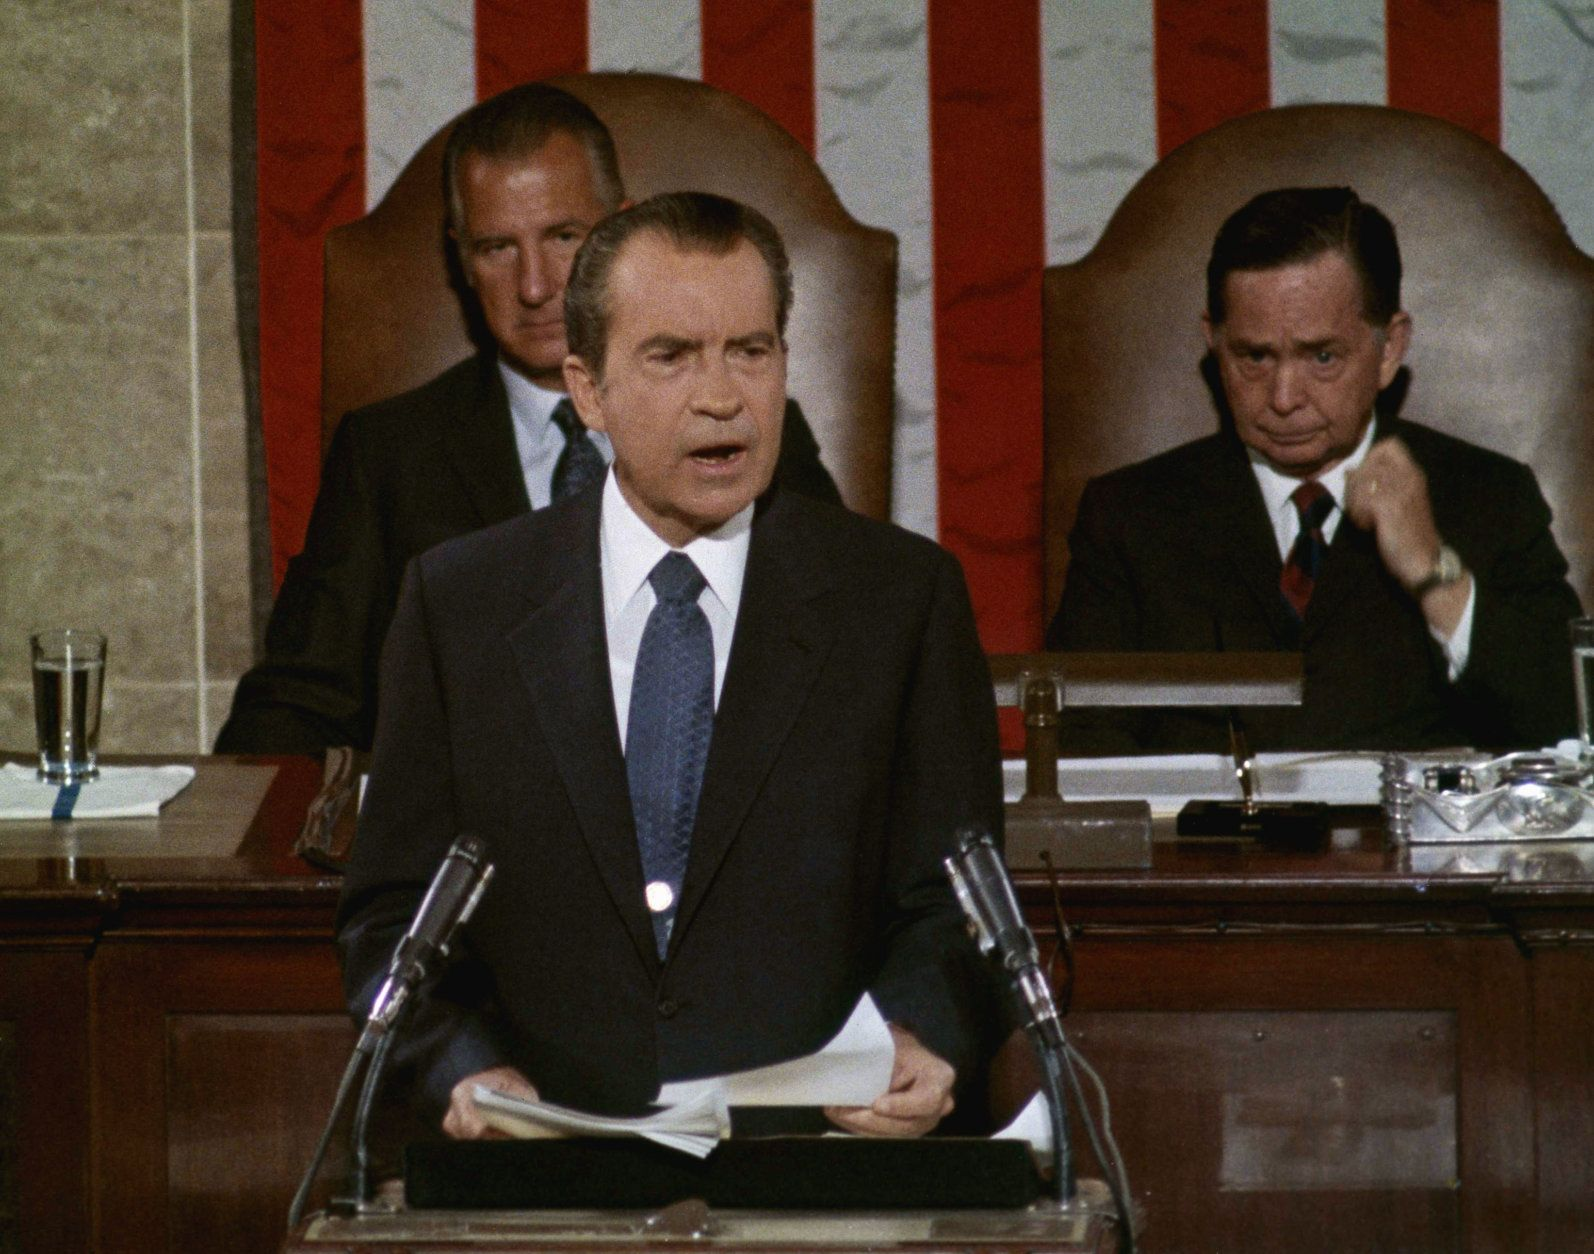 President Richard Nixon addresses a Joint Session of Congress, Sept. 9, 1971, to explain his new economic policy following his sudden freeze on prices, rents and wages of Aug. 15. Seated behind him on the dais are Vice President Spiro Agnew, acting as president of the Senate, and Speaker of the House Carl Albert. (AP Photo)